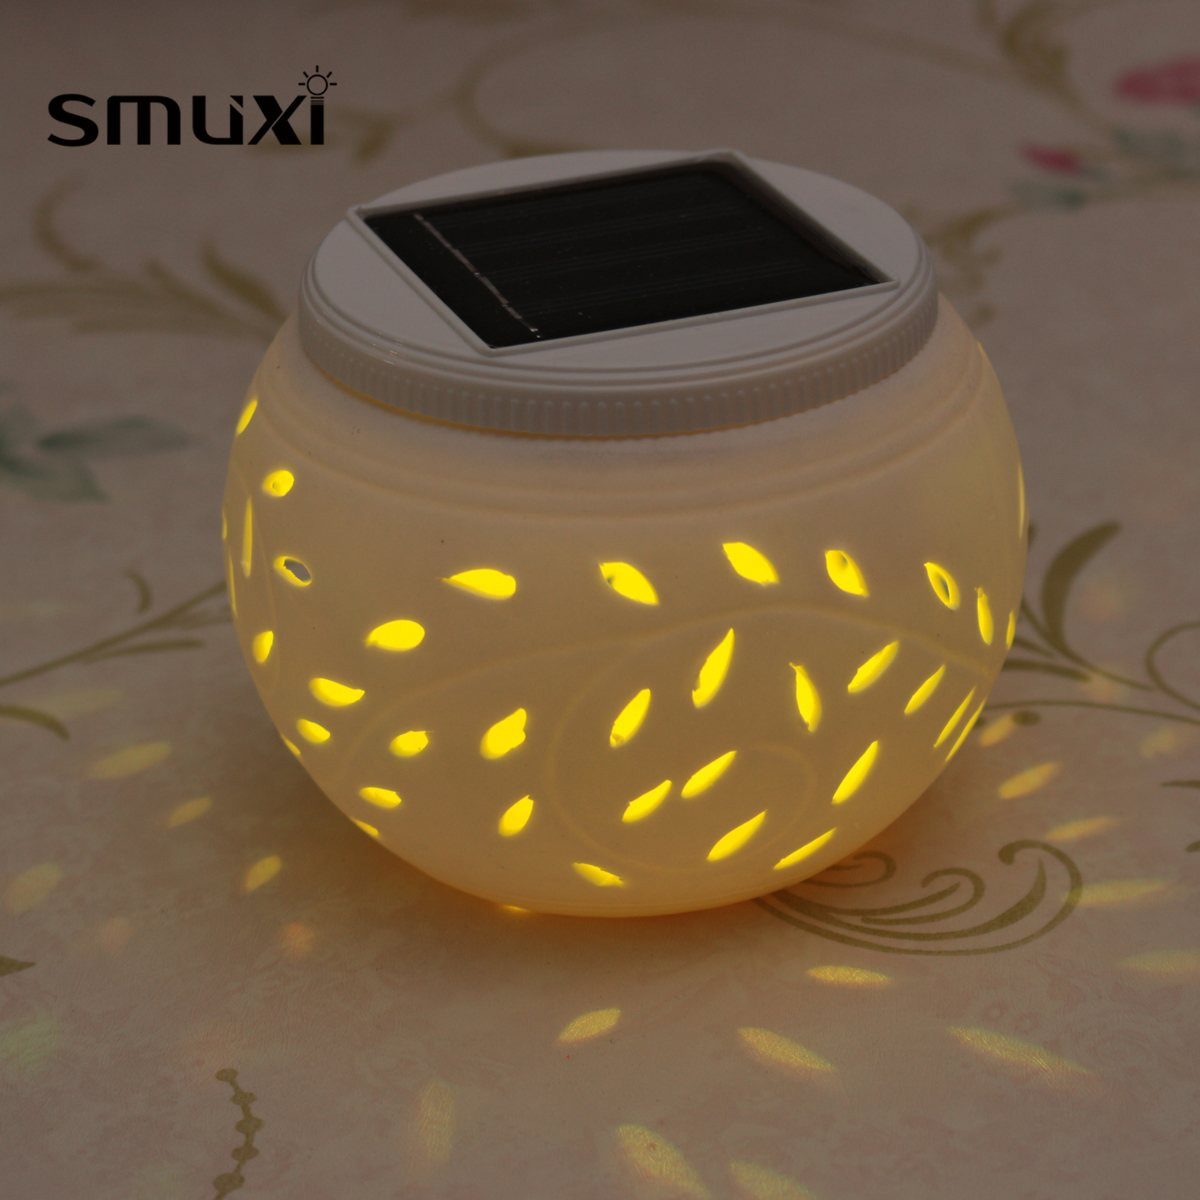 Smuxi Hot Sale Novelty Ceramic Changing Colour LED Solar Lamp Sun Powered Table Garden Round Light Solar Power Lamp